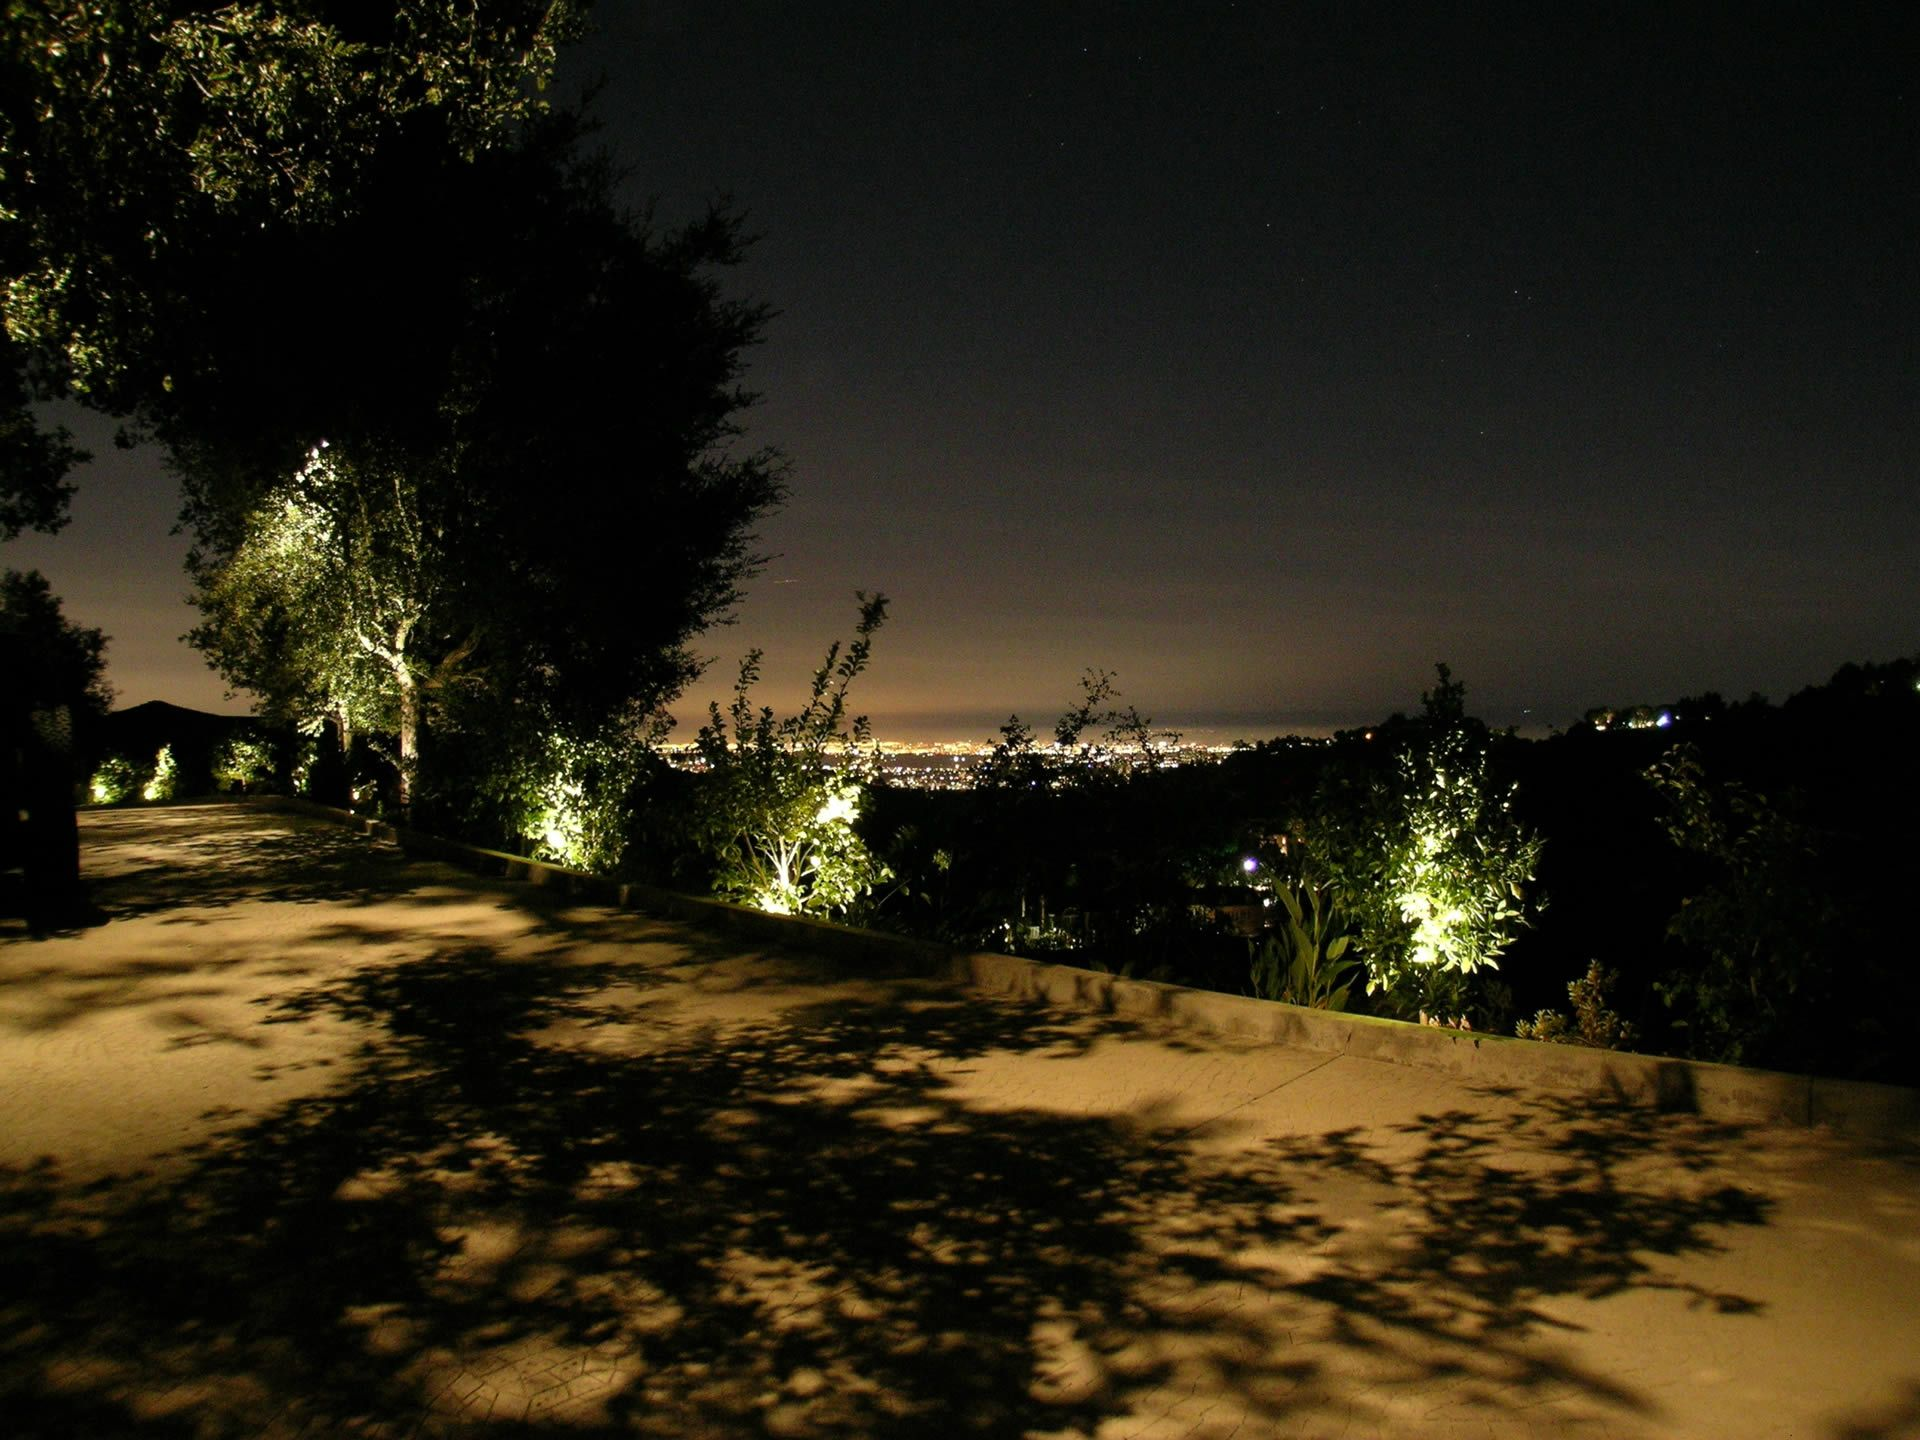 Featured Project Beverly Hills Landscape Lighting - LED Landscape Lighting #LEDLandscapeLighting #landscapelighting # & Featured Project: Beverly Hills Landscape Lighting - LED Landscape ... azcodes.com